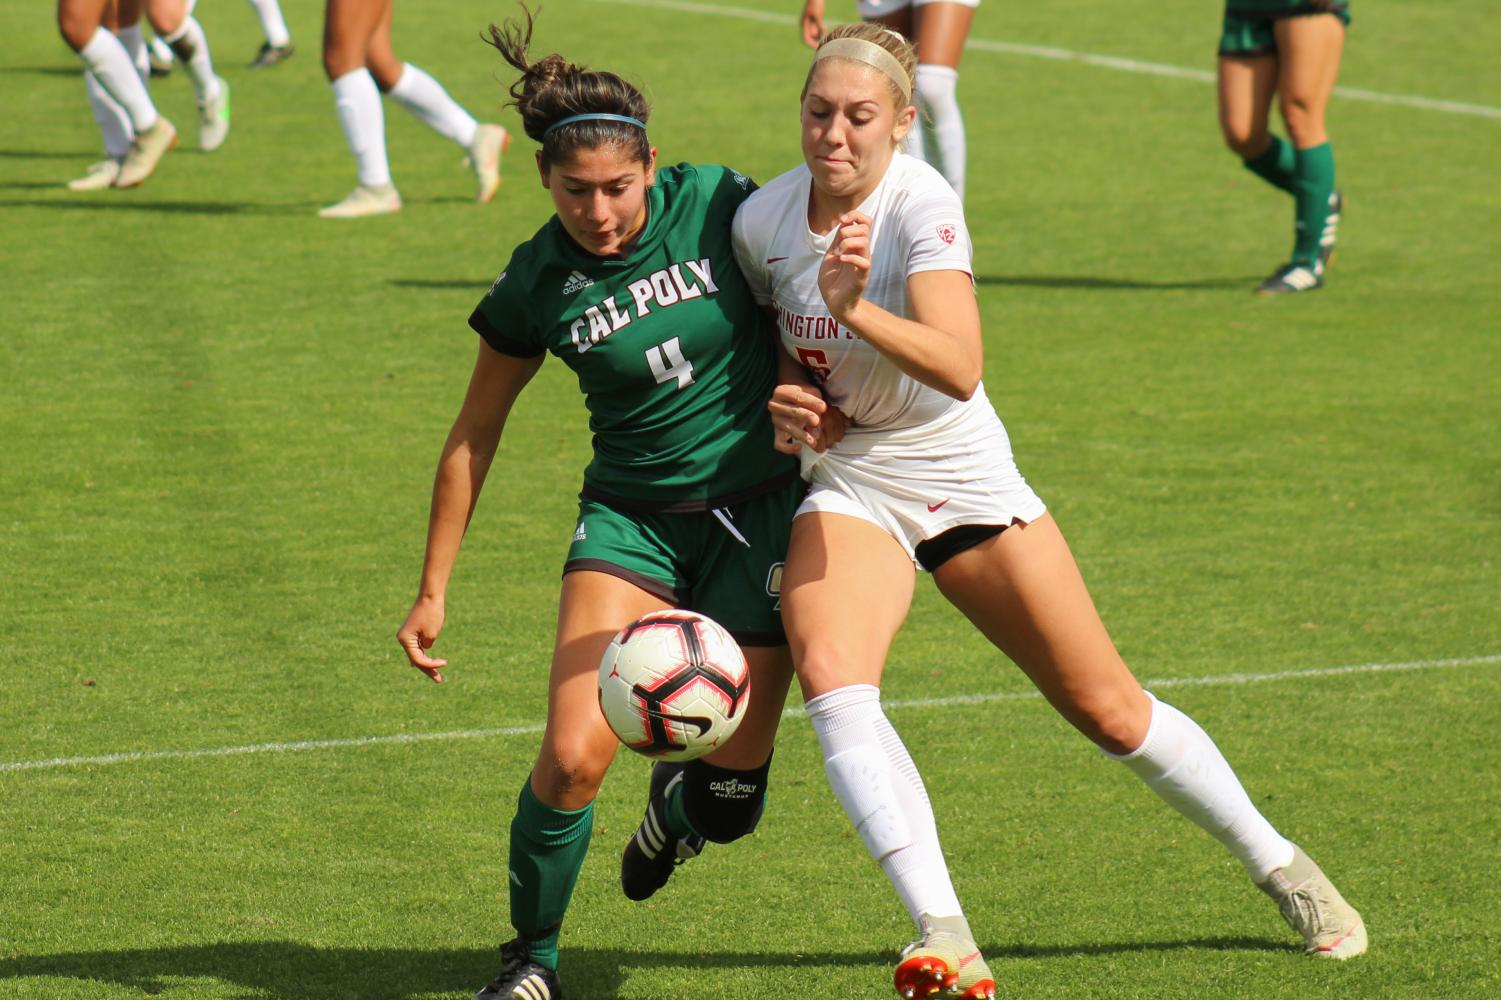 Junior forward Morgan Weaver battles against Cal Poly freshman defender Emily Talmi to take control of the ball in a game last Sunday at the Lower Soccer Field. The Cougars won 4-1.